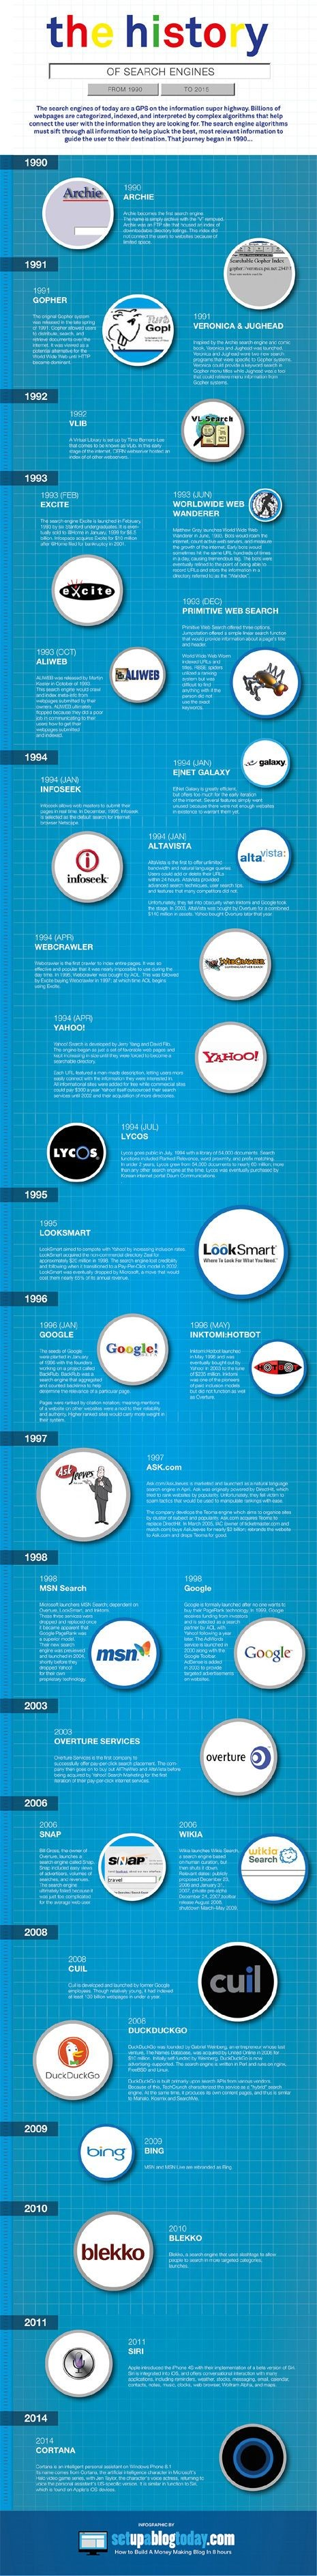 ¿CUÁLES HAS USADO? The History of Search...